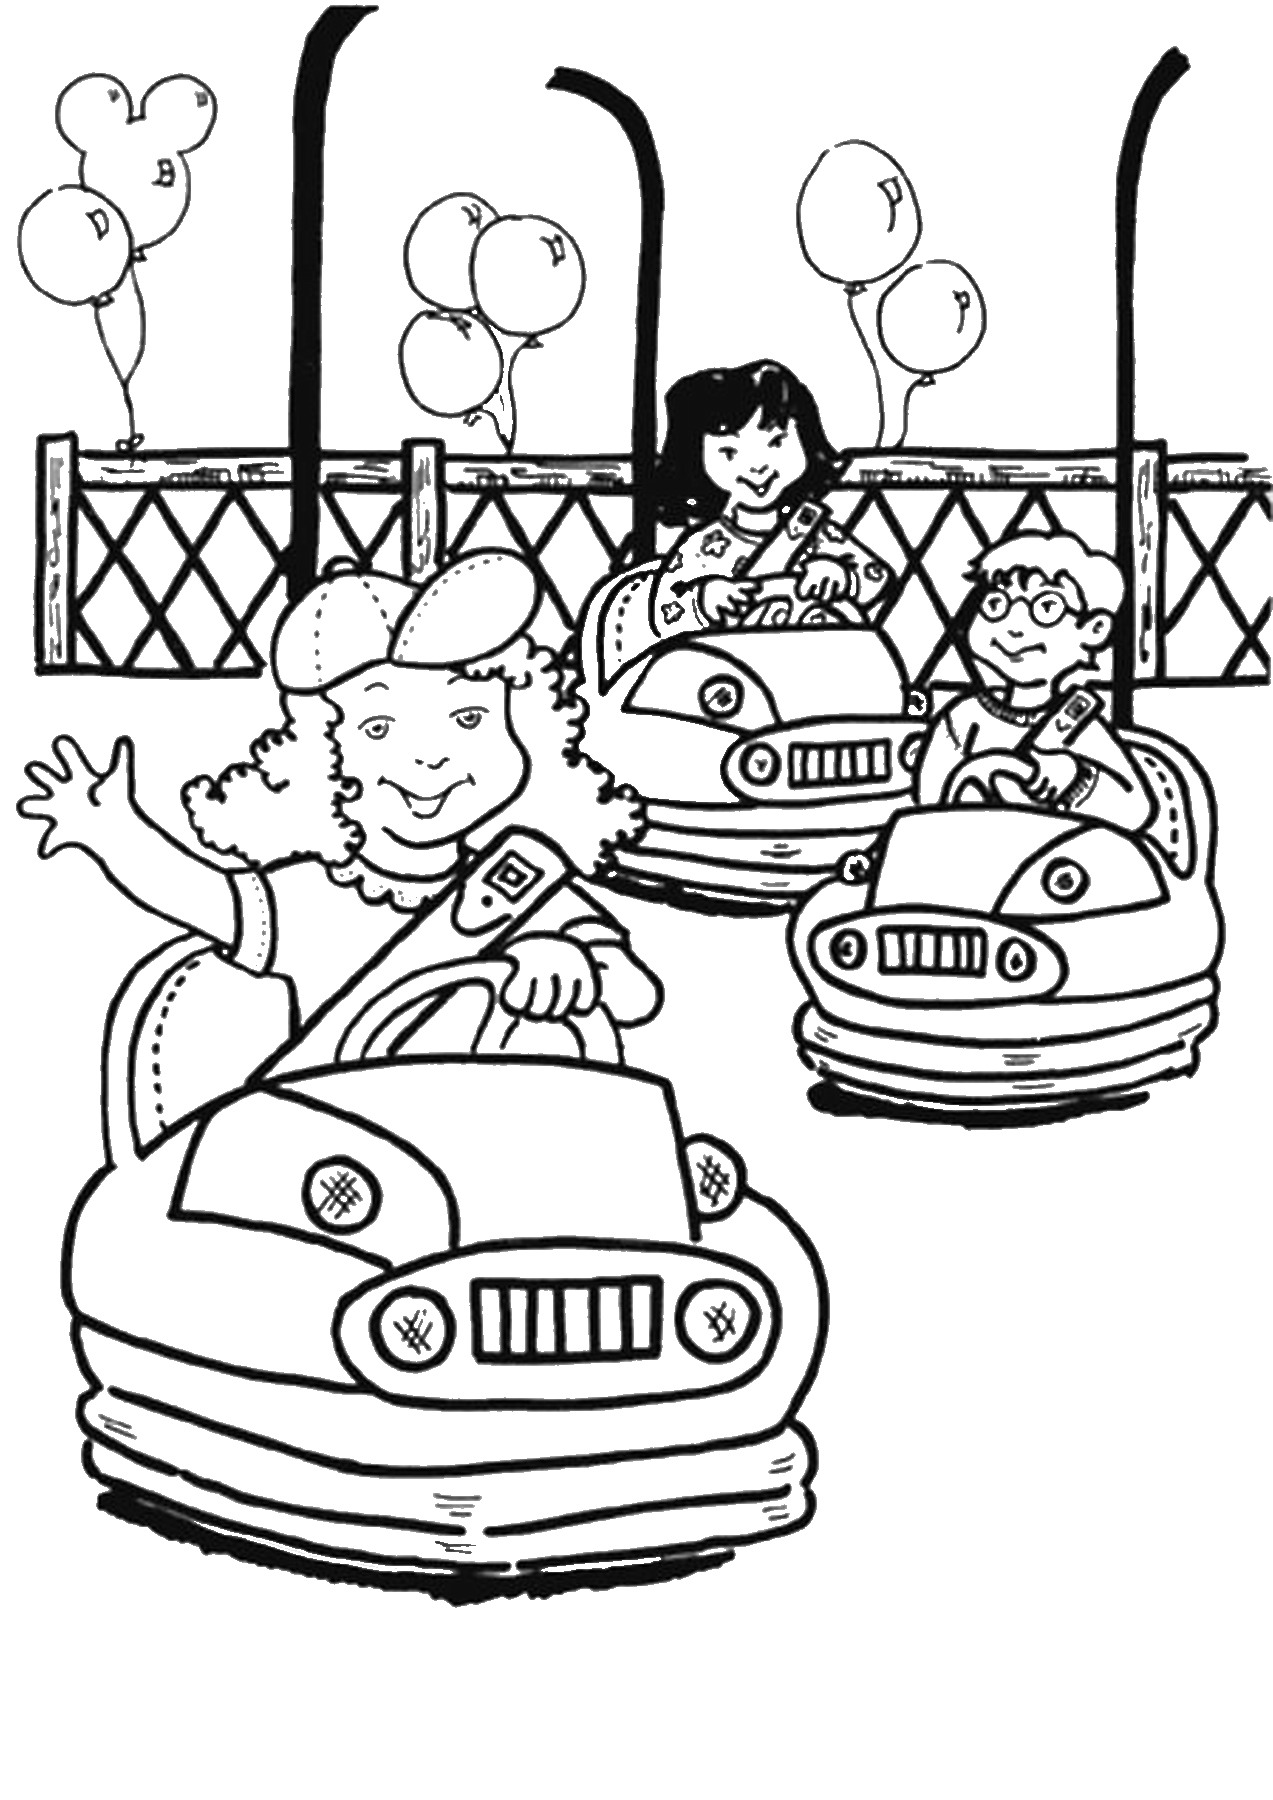 Water park drawing at free for personal for Water themed coloring pages